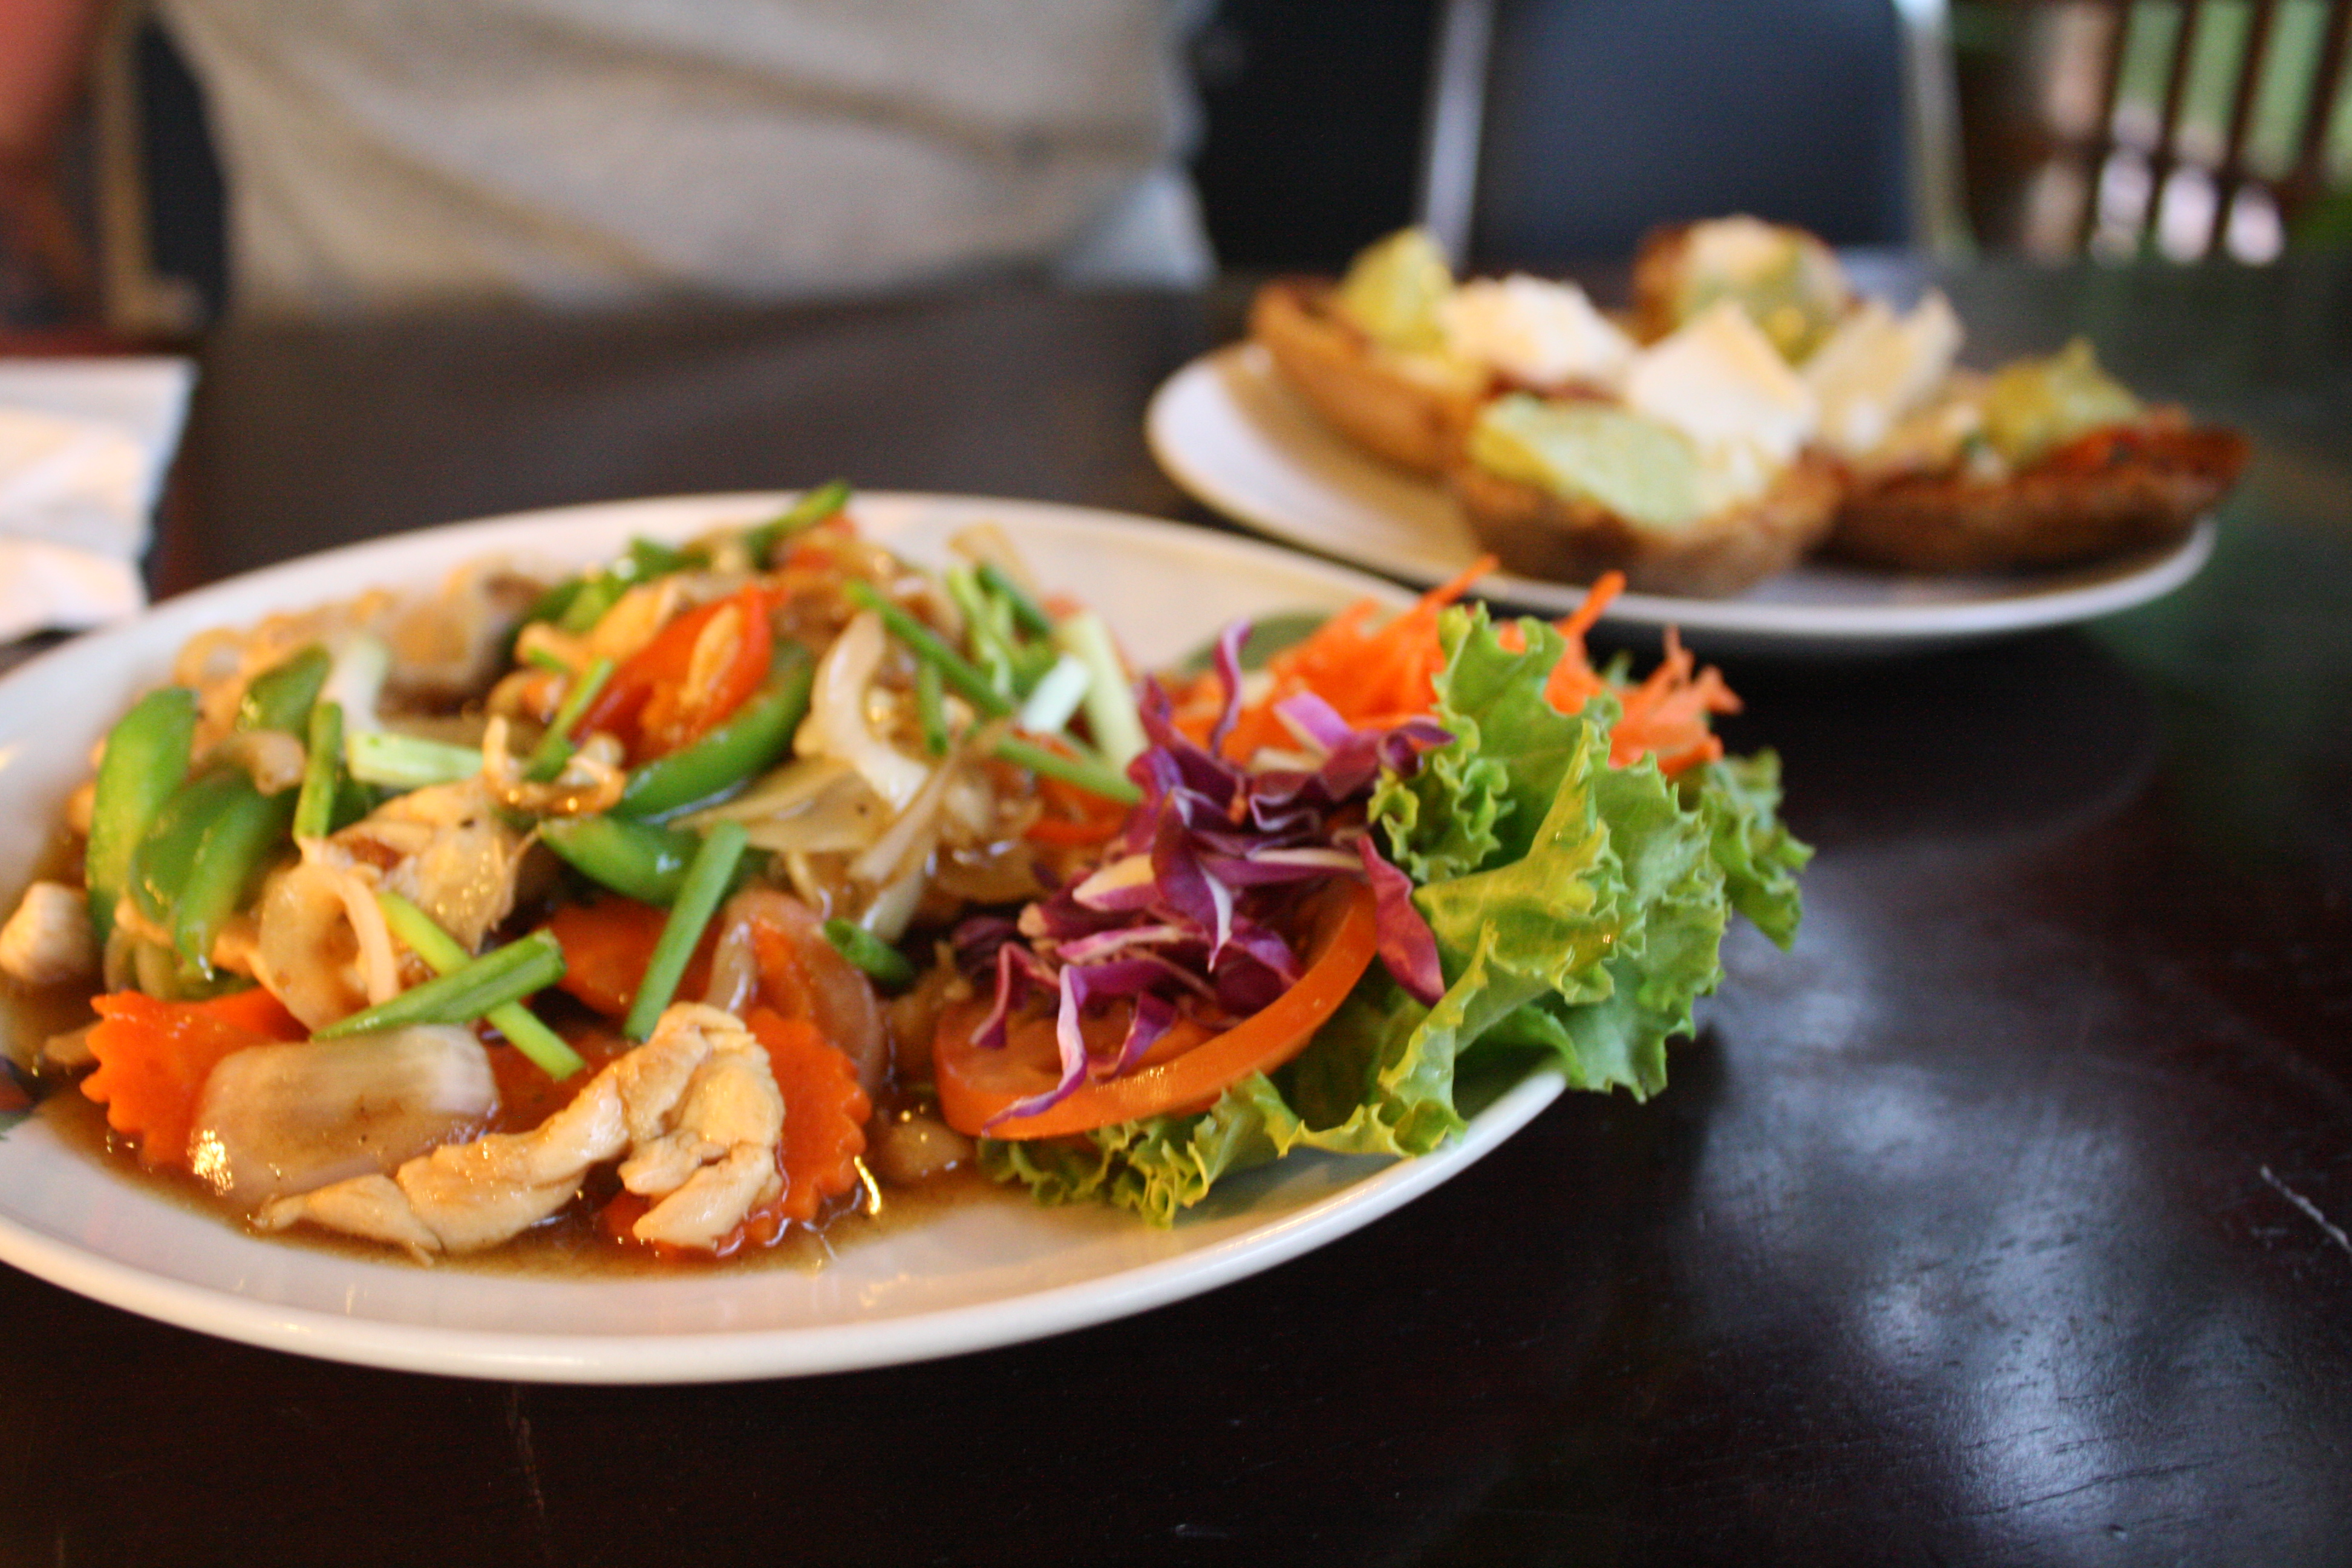 Search for Asian cuisine norman oklahoma